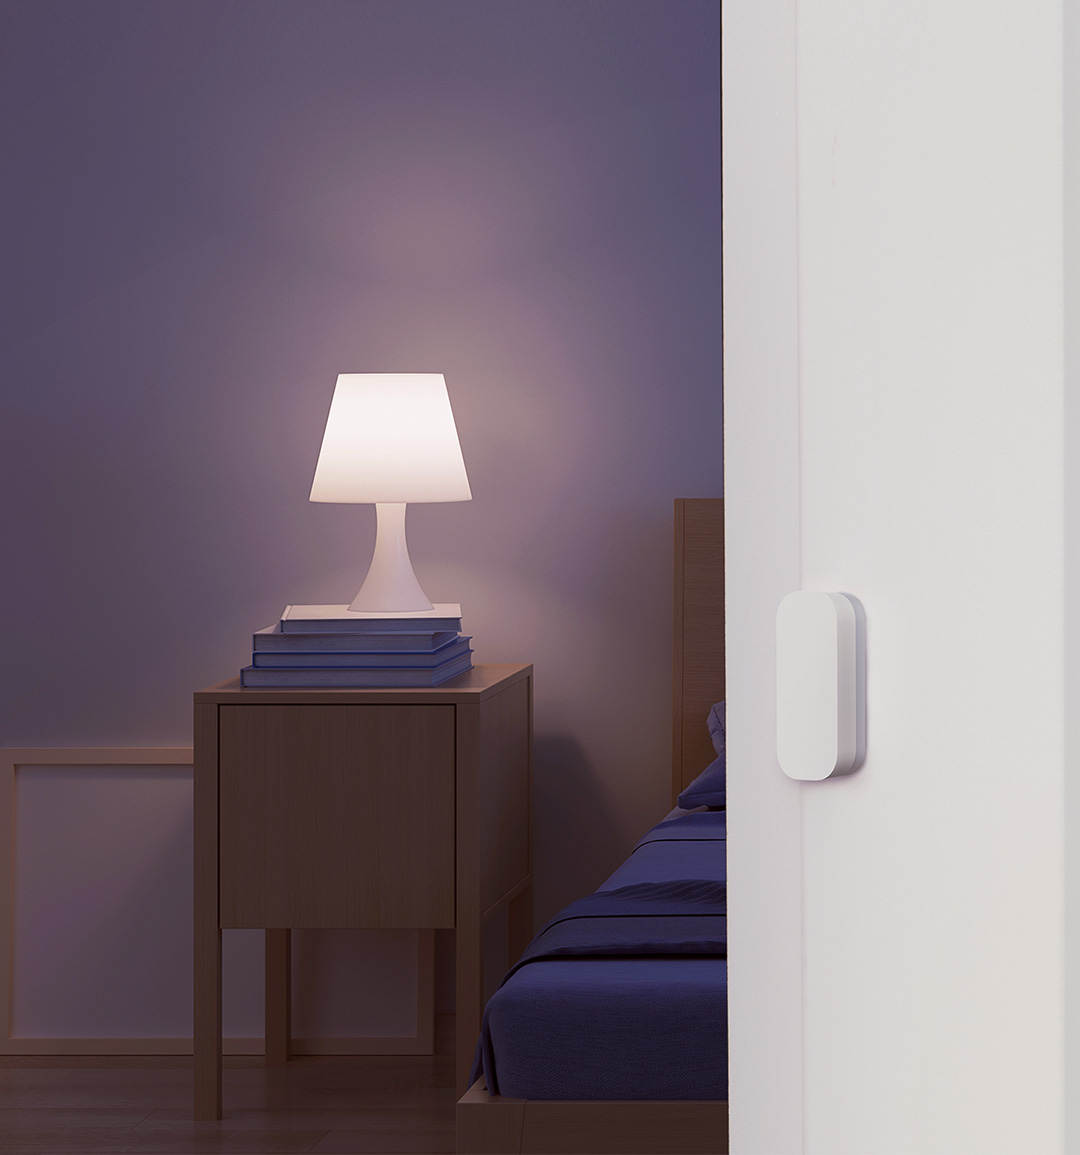 Smart bulb + door swnsor: Desk light Automatically Turns On When You Open the Door